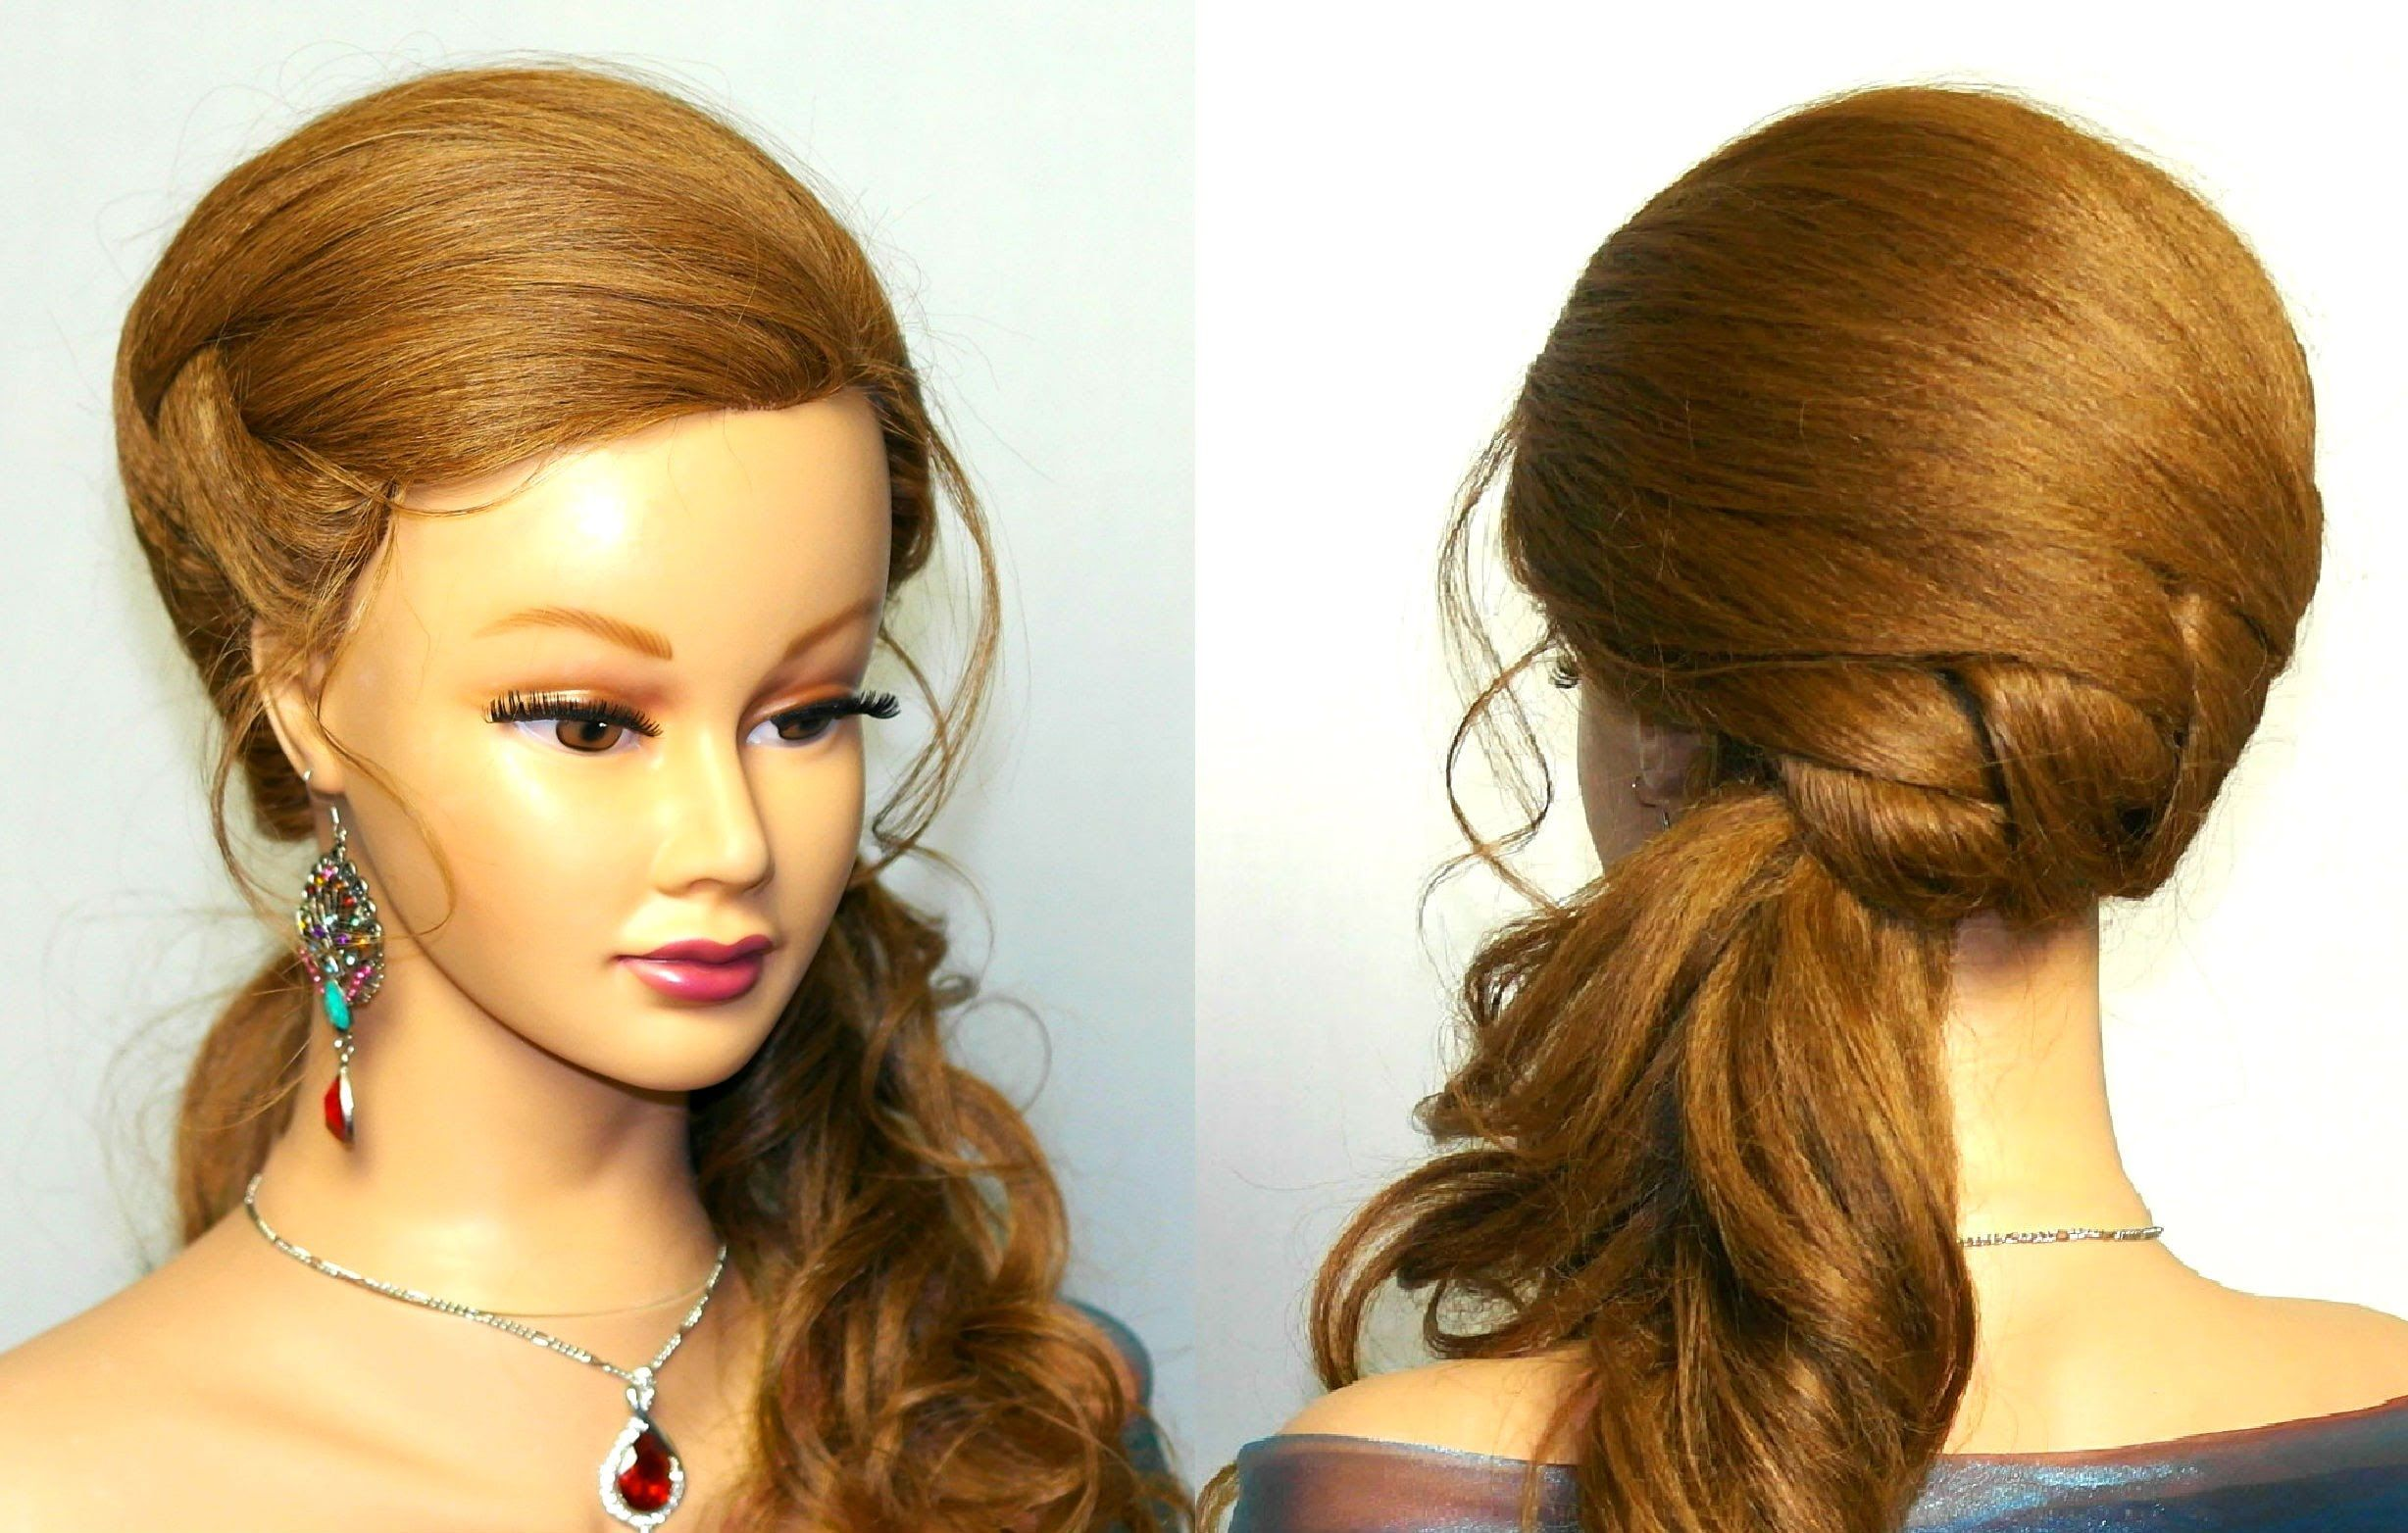 Wedding Hairstyles For Long Hair Pictures Photos And: My New Channel With Hairstyles! Http://www.youtube.com